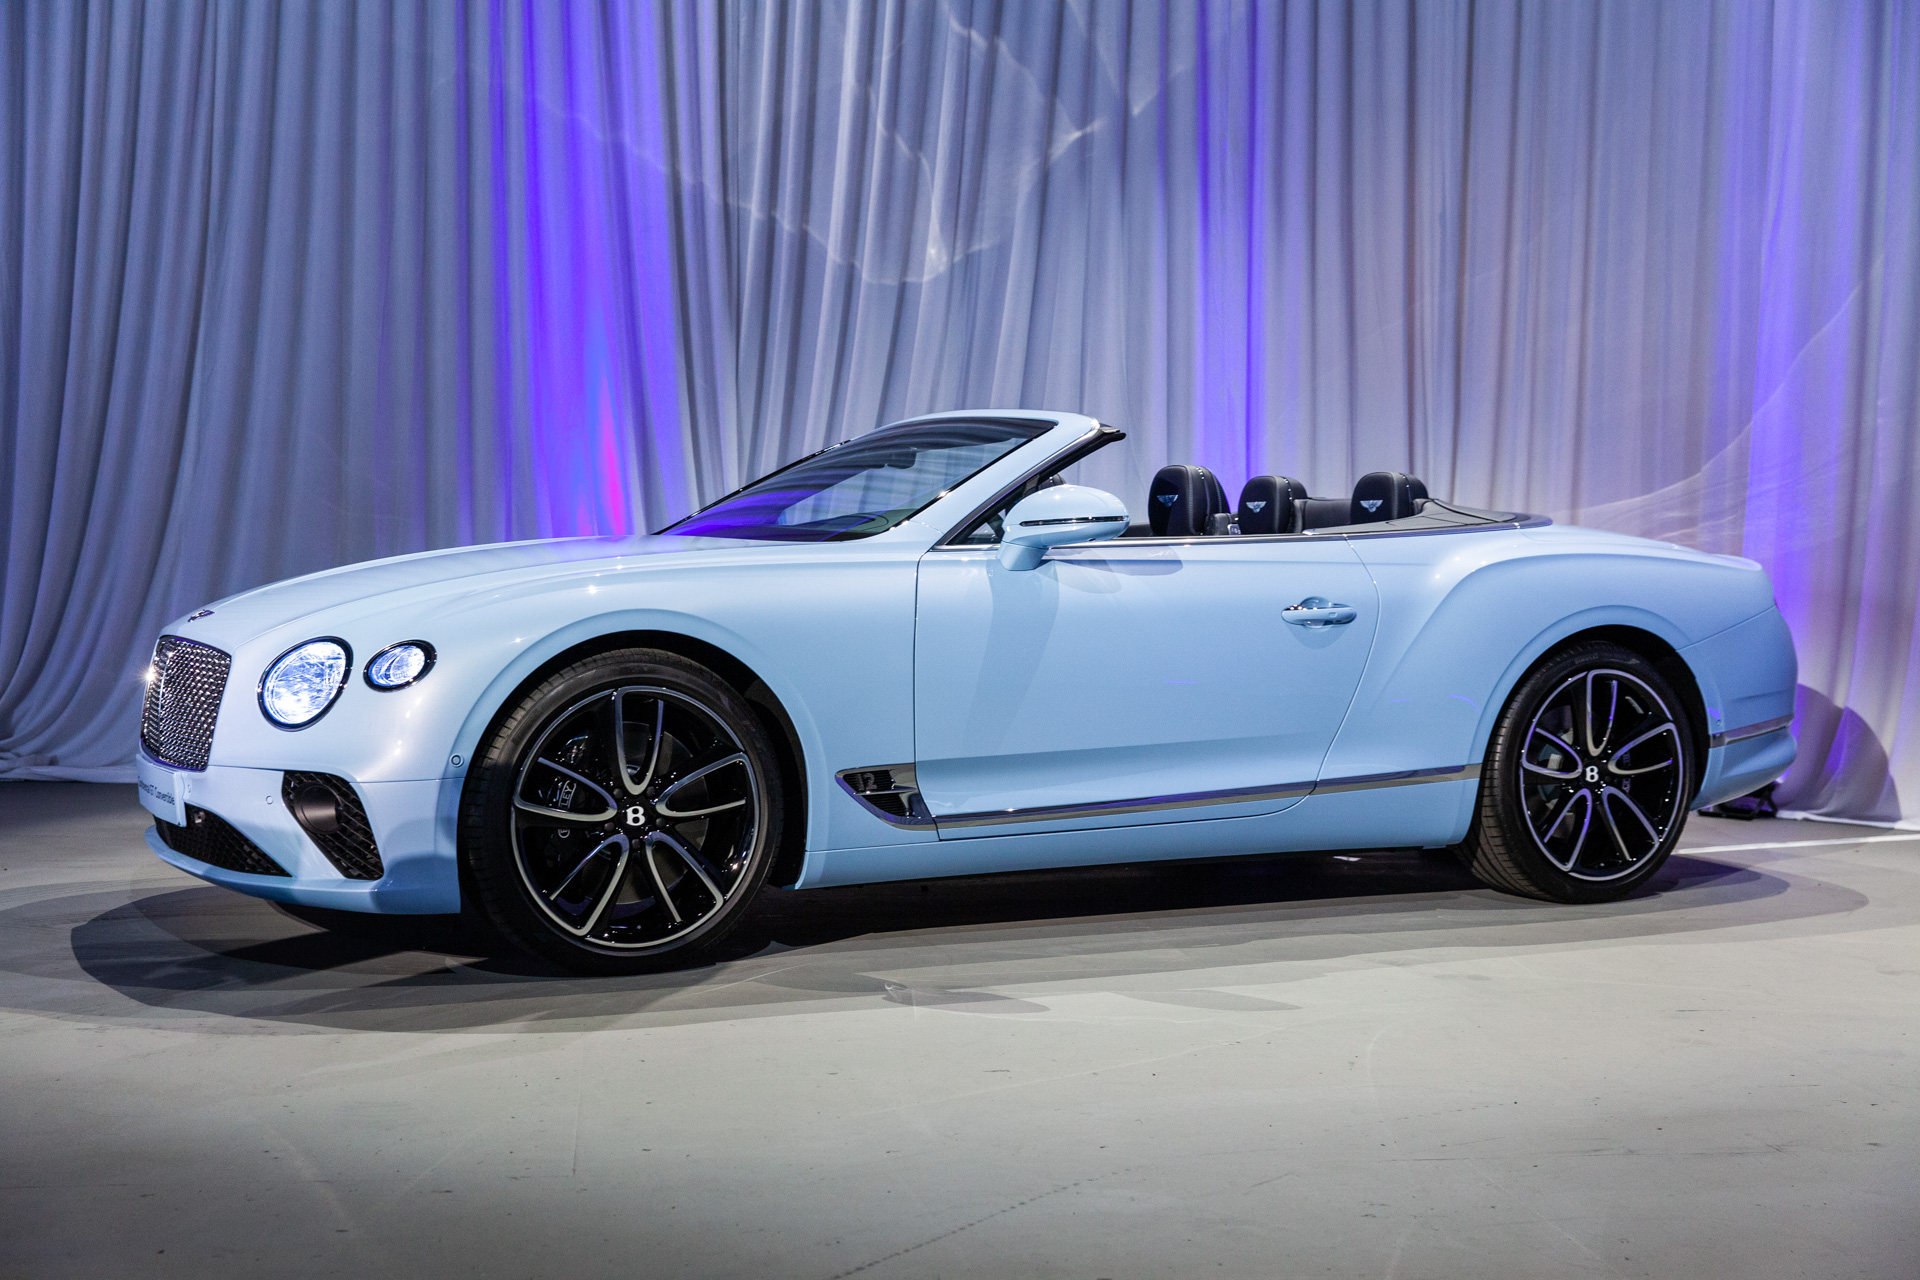 Best Convertibles 2020 The Bentley GT Convertible's best feature is one we'll hardly see